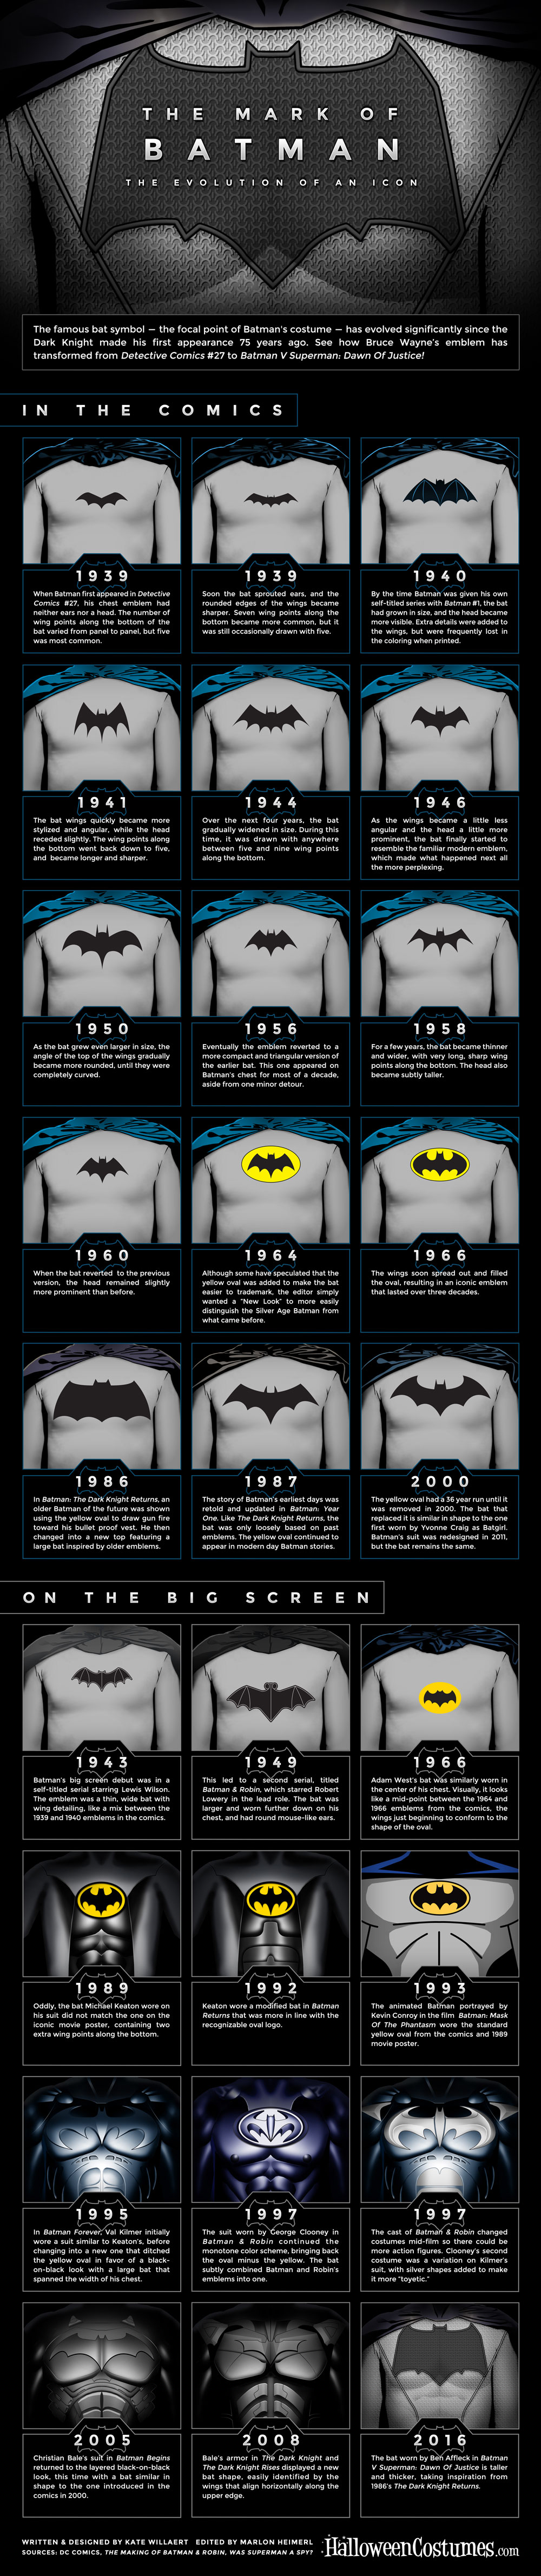 Batman Symbol Infographic & The Mark of Batman: The Evolution of an Icon [Infographic ...